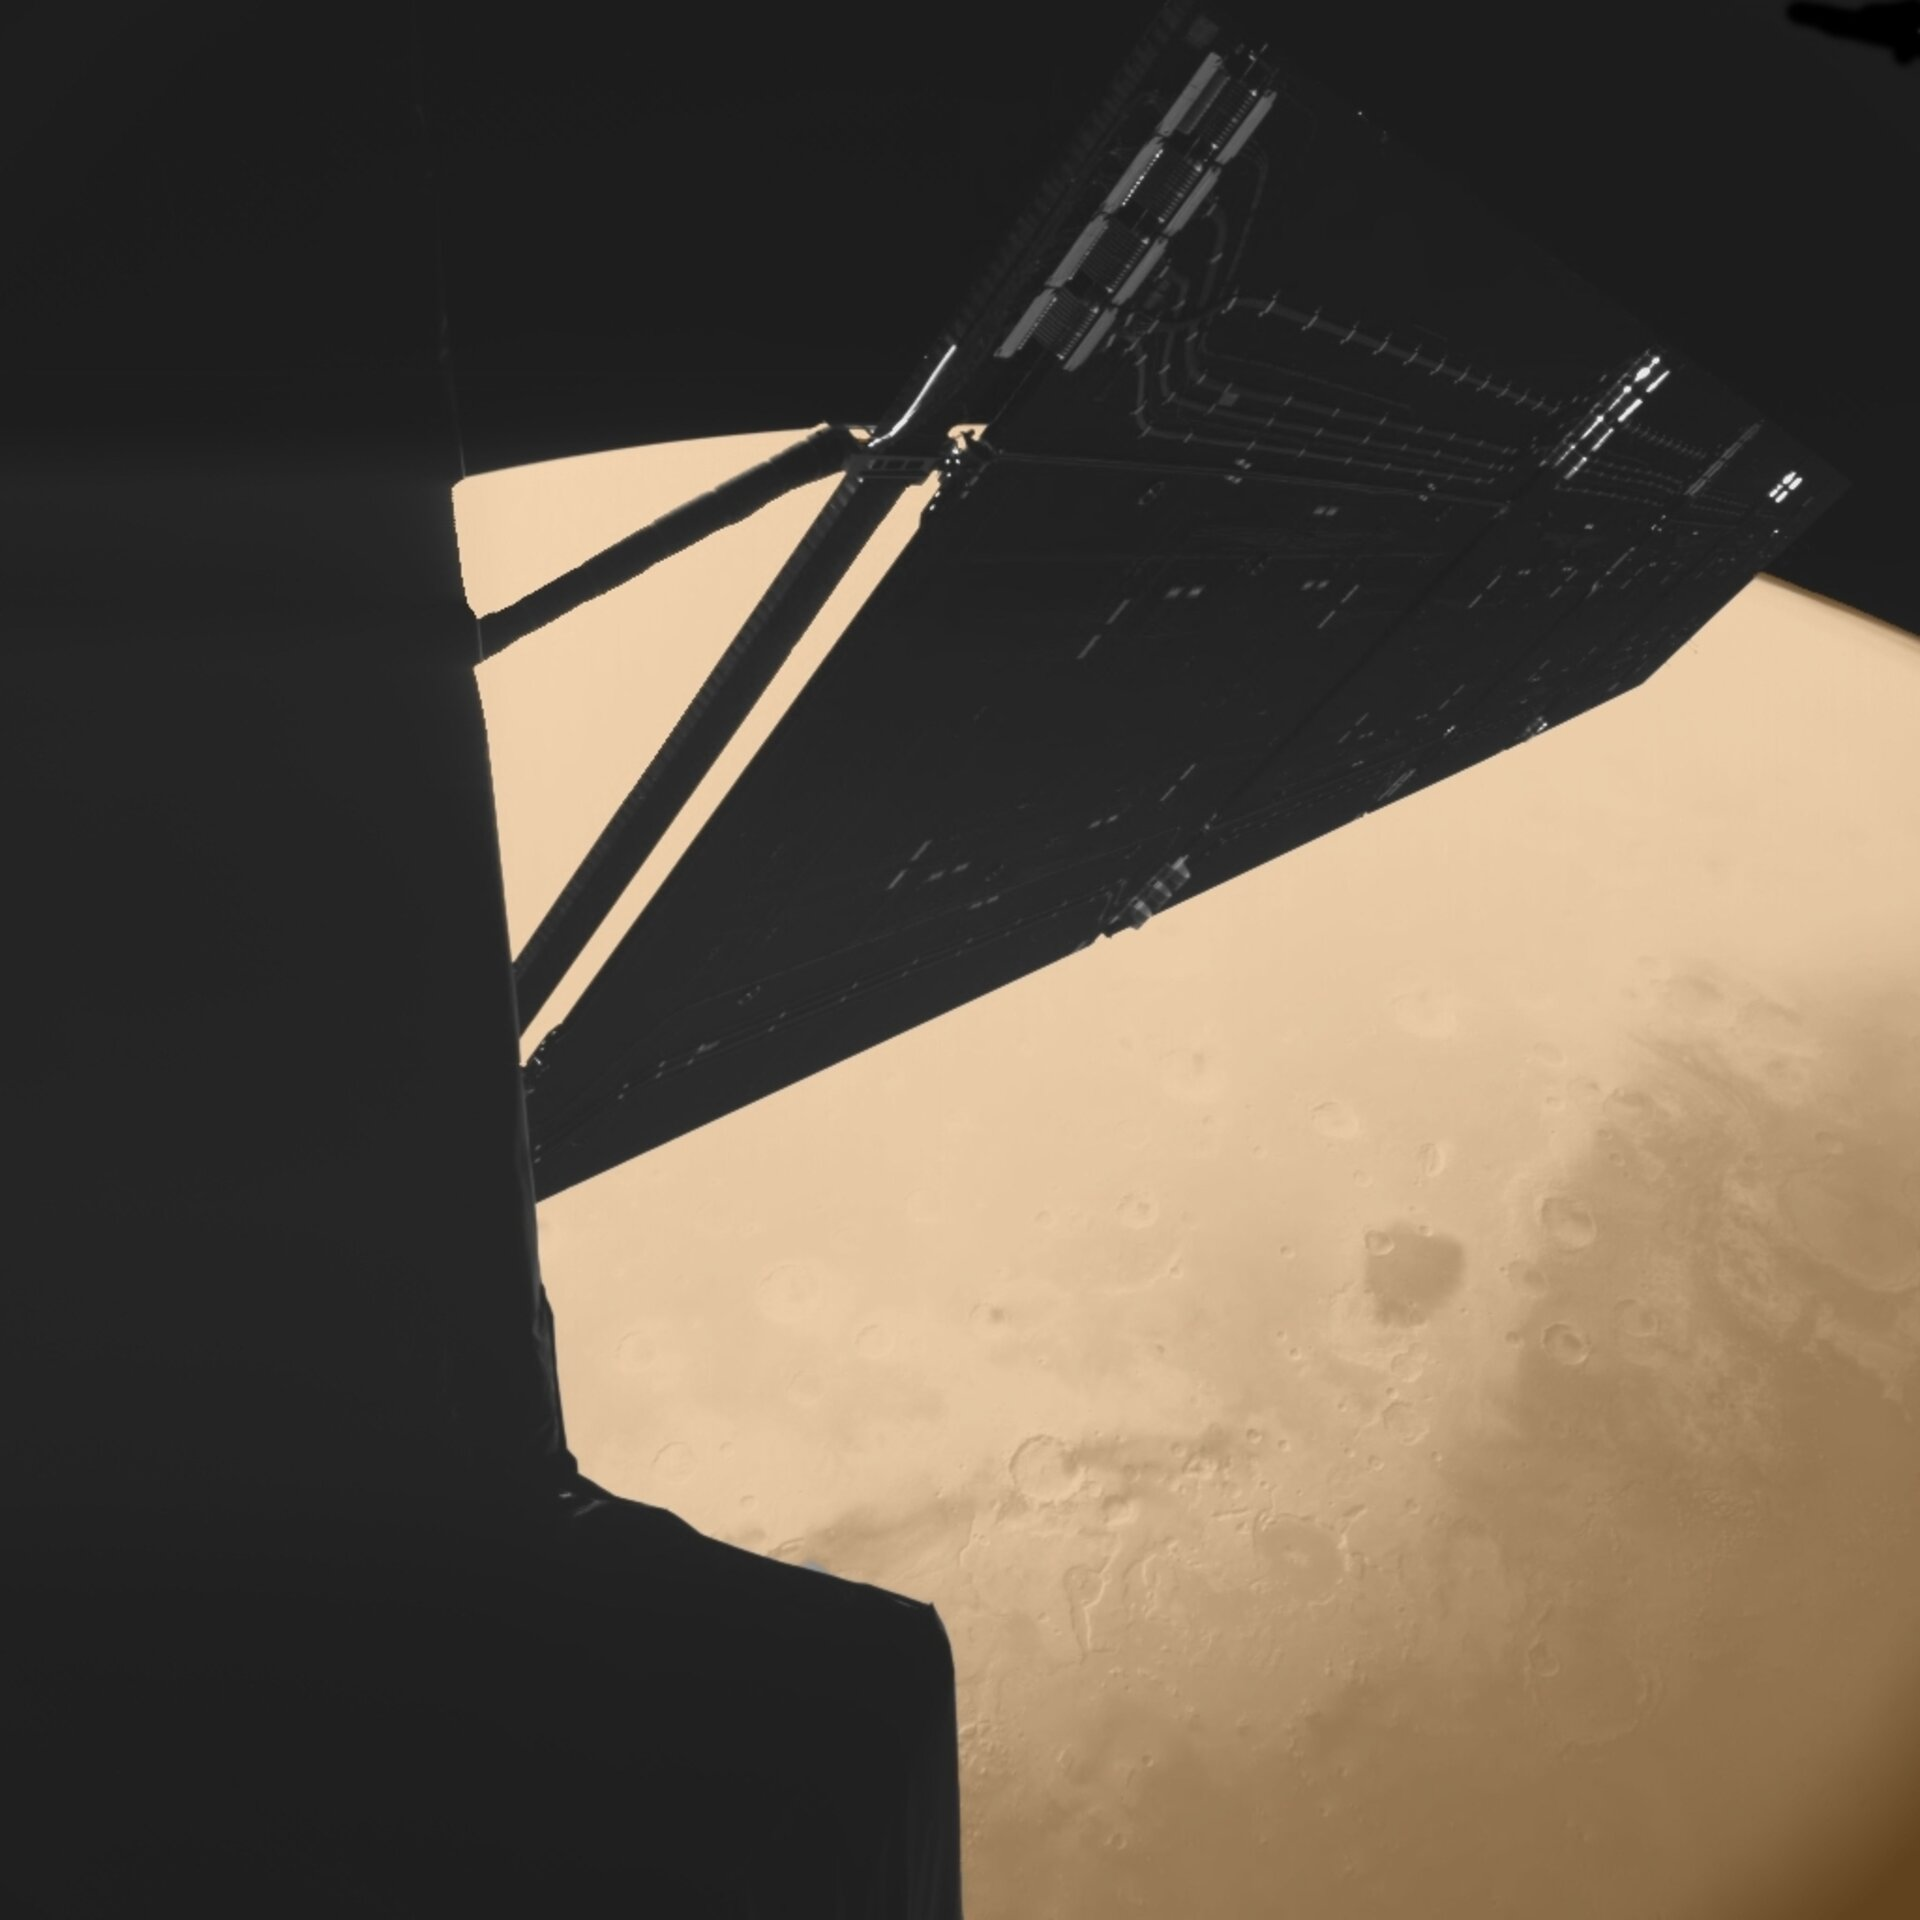 Stunning image of Rosetta above Mars taken by the Philae lander camera